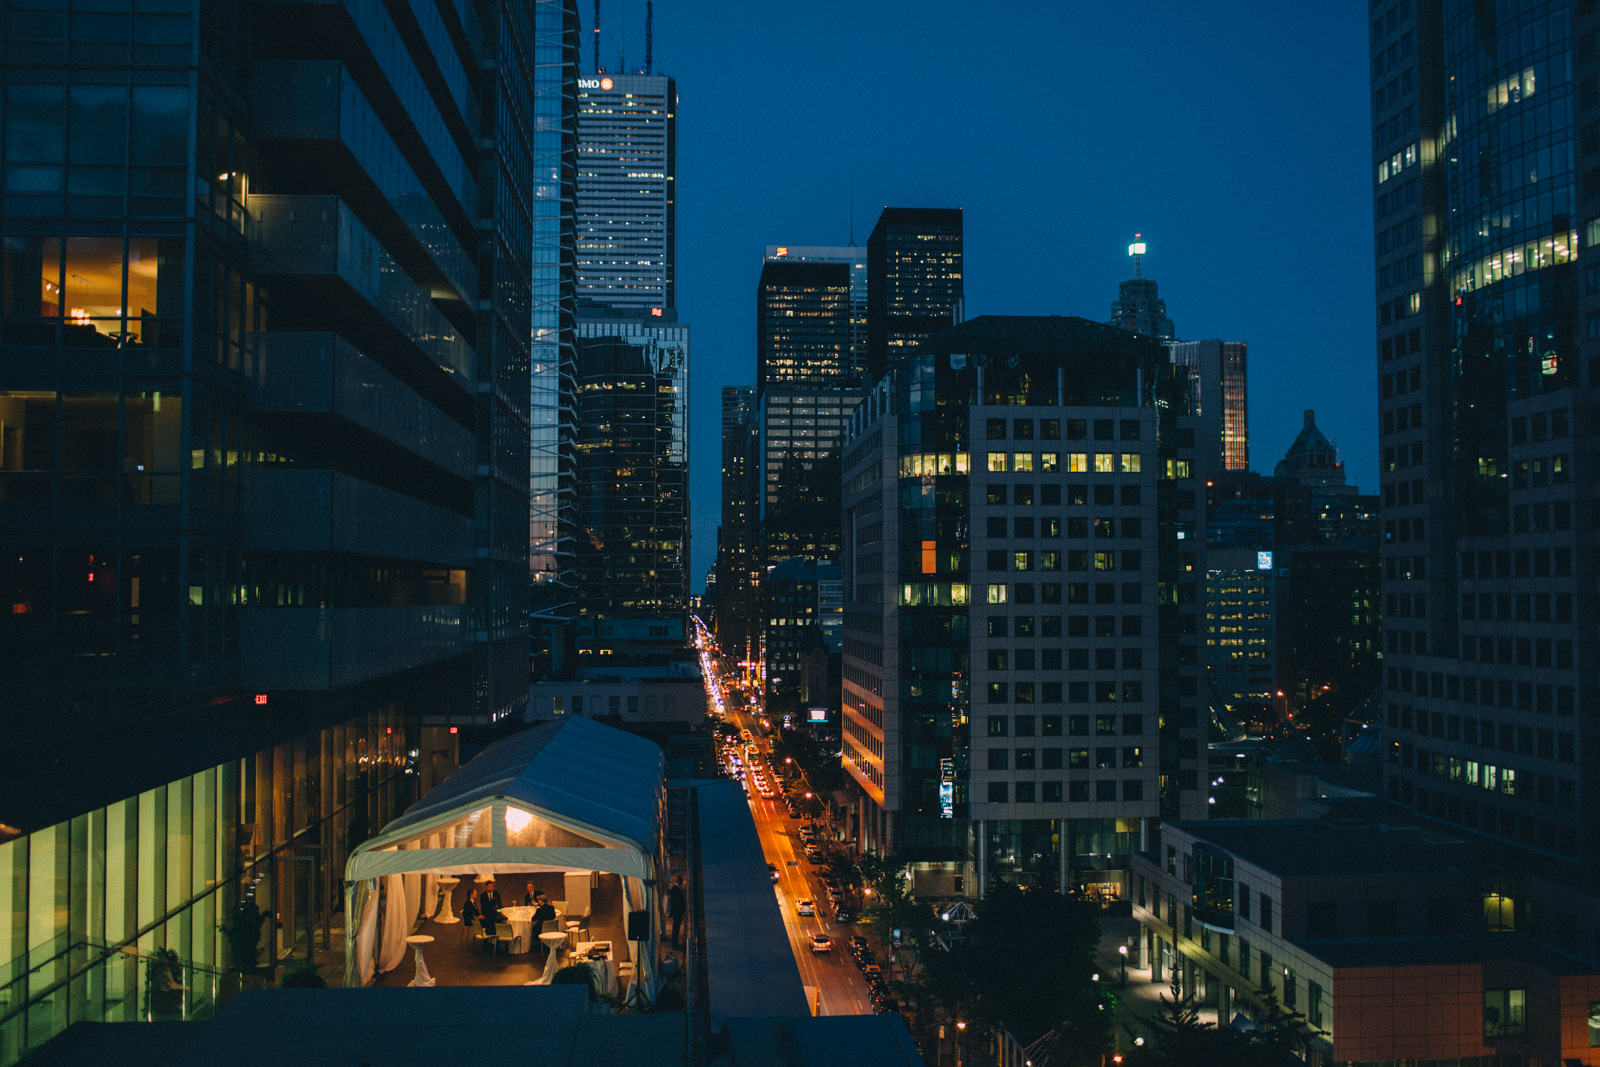 Malaparte-wedding-photography-Toronto-by-Sam-Wong-of-Artanis-Collective_77.jpg